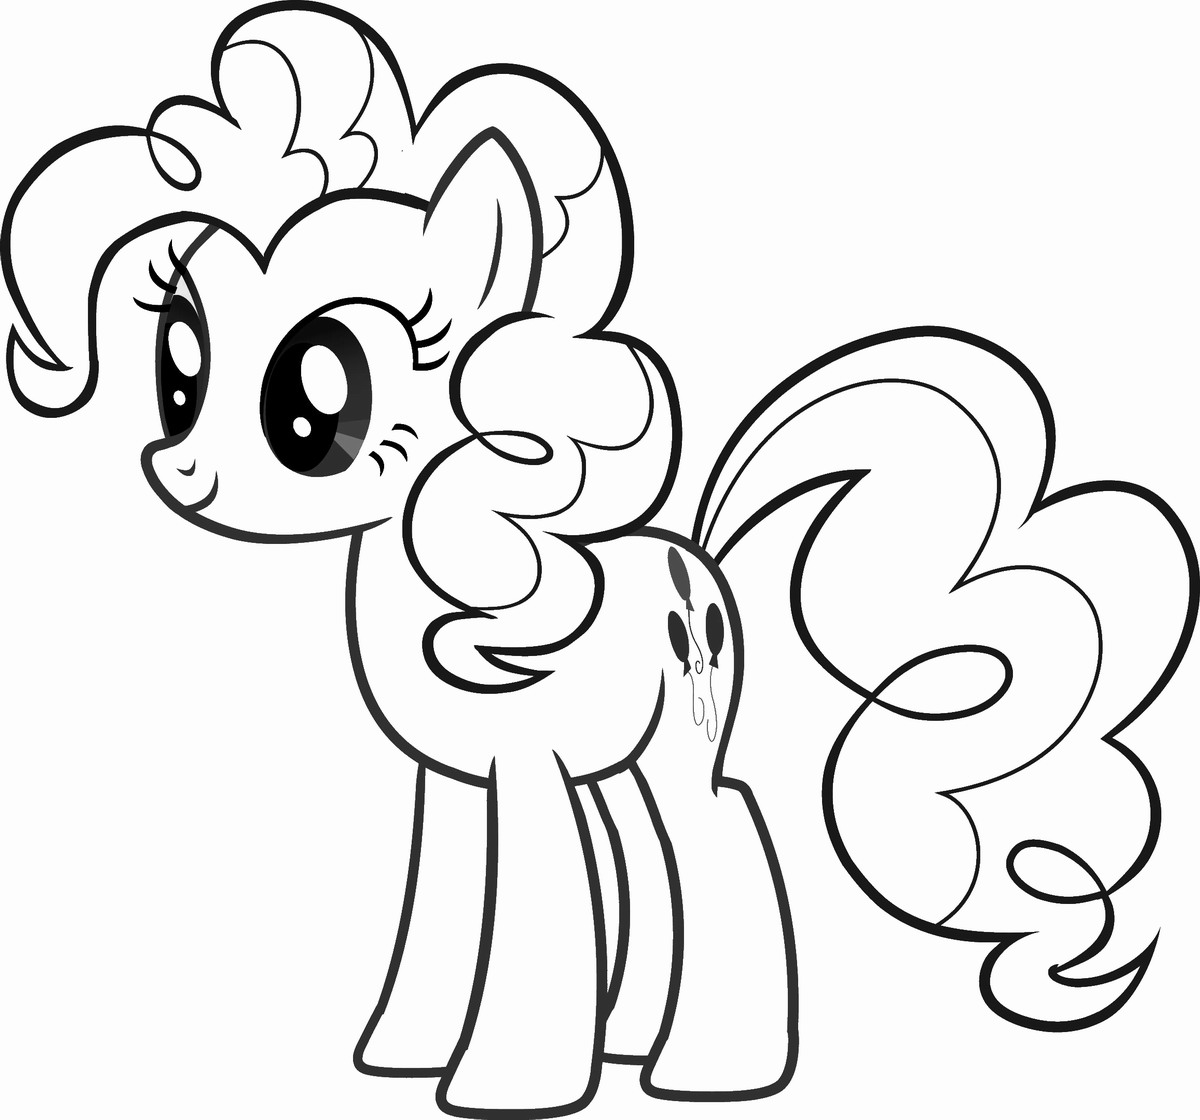 coloring page my little pony my little pony coloring pages printable activity shelter pony page coloring little my